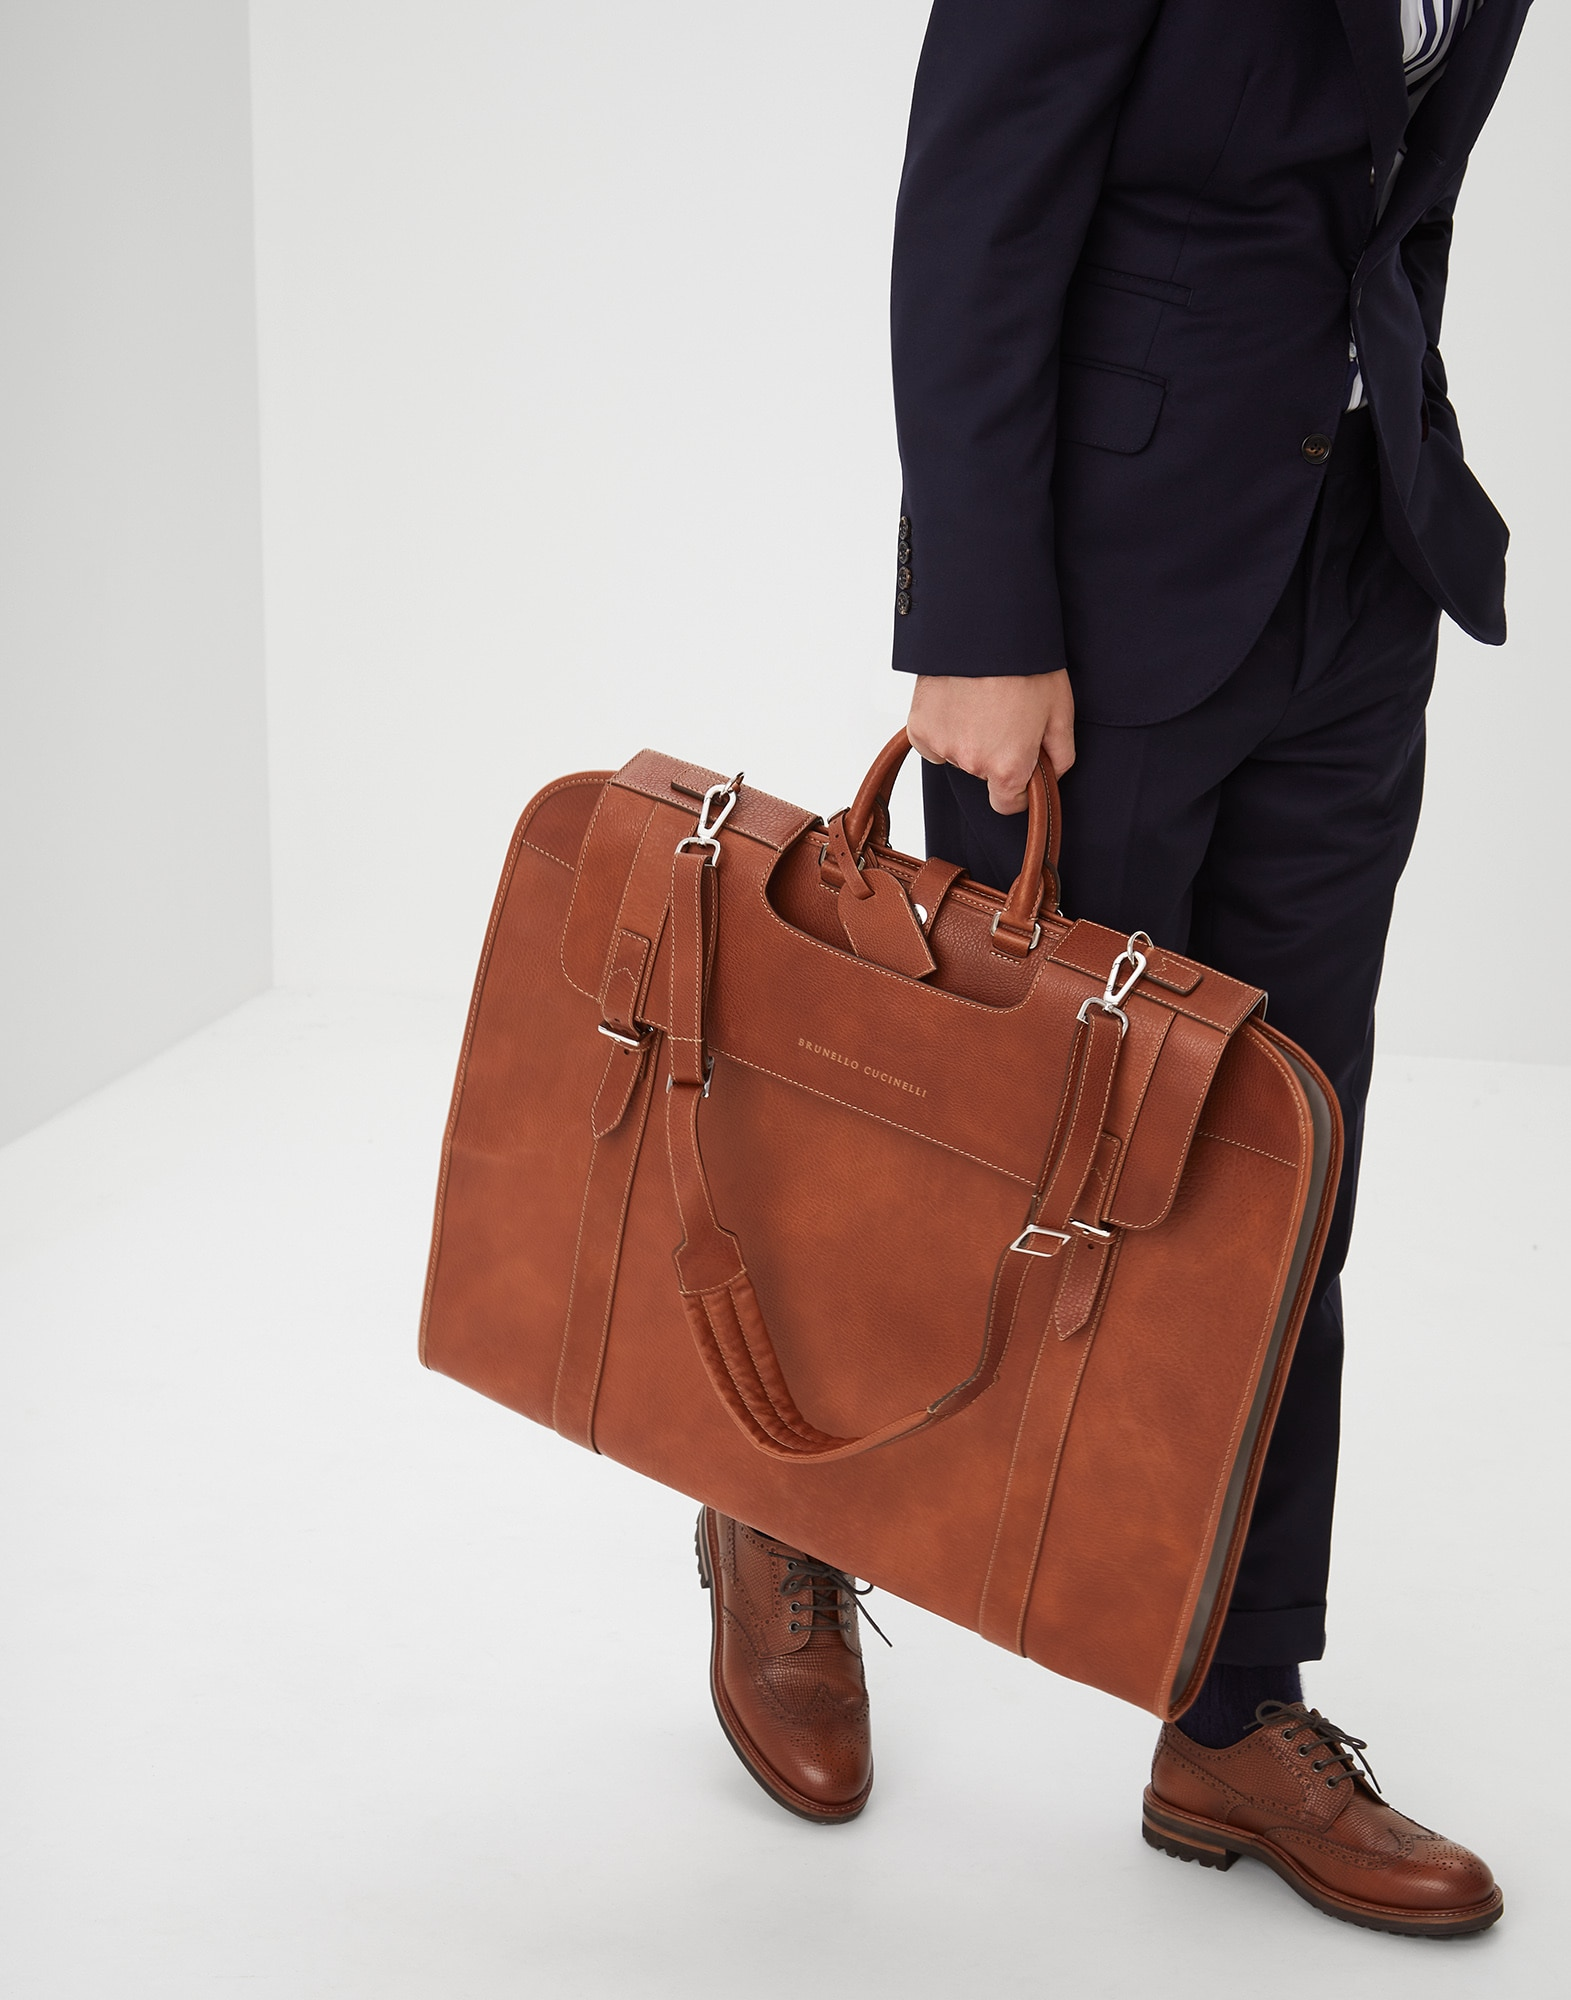 Suit Bag - Editorial